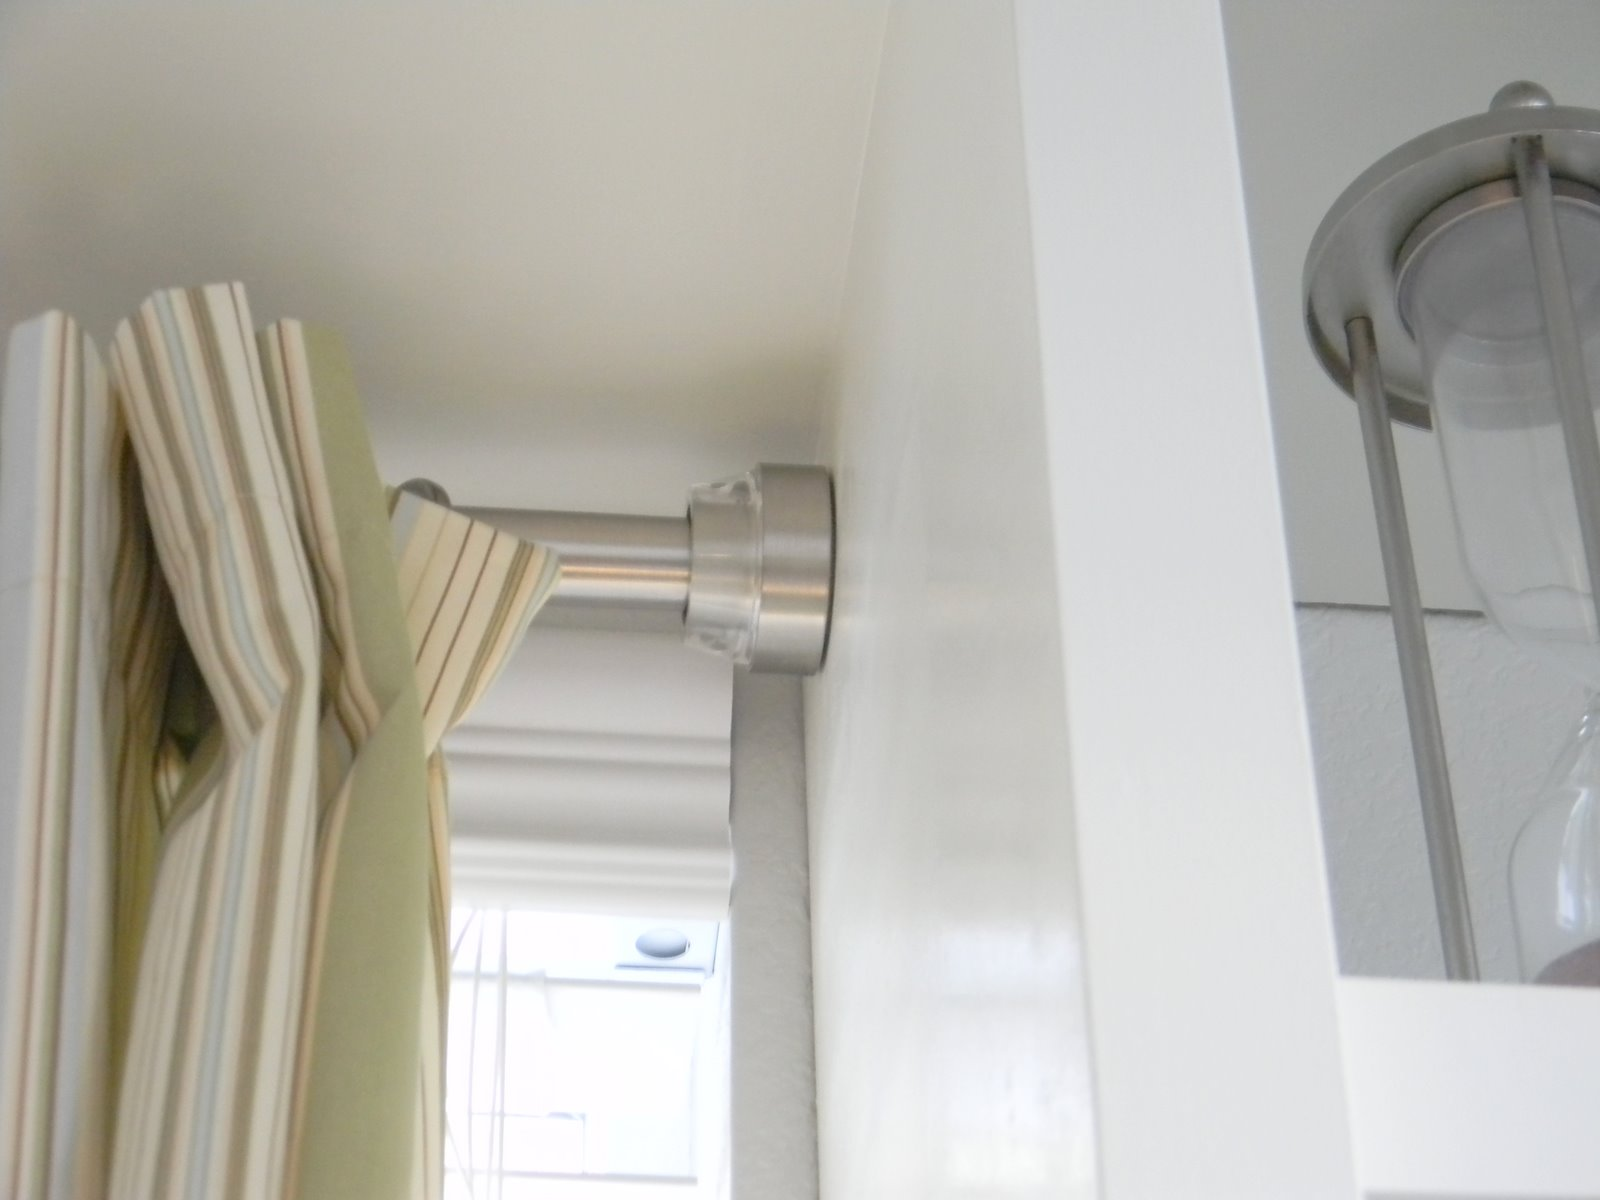 pressure rods for curtains